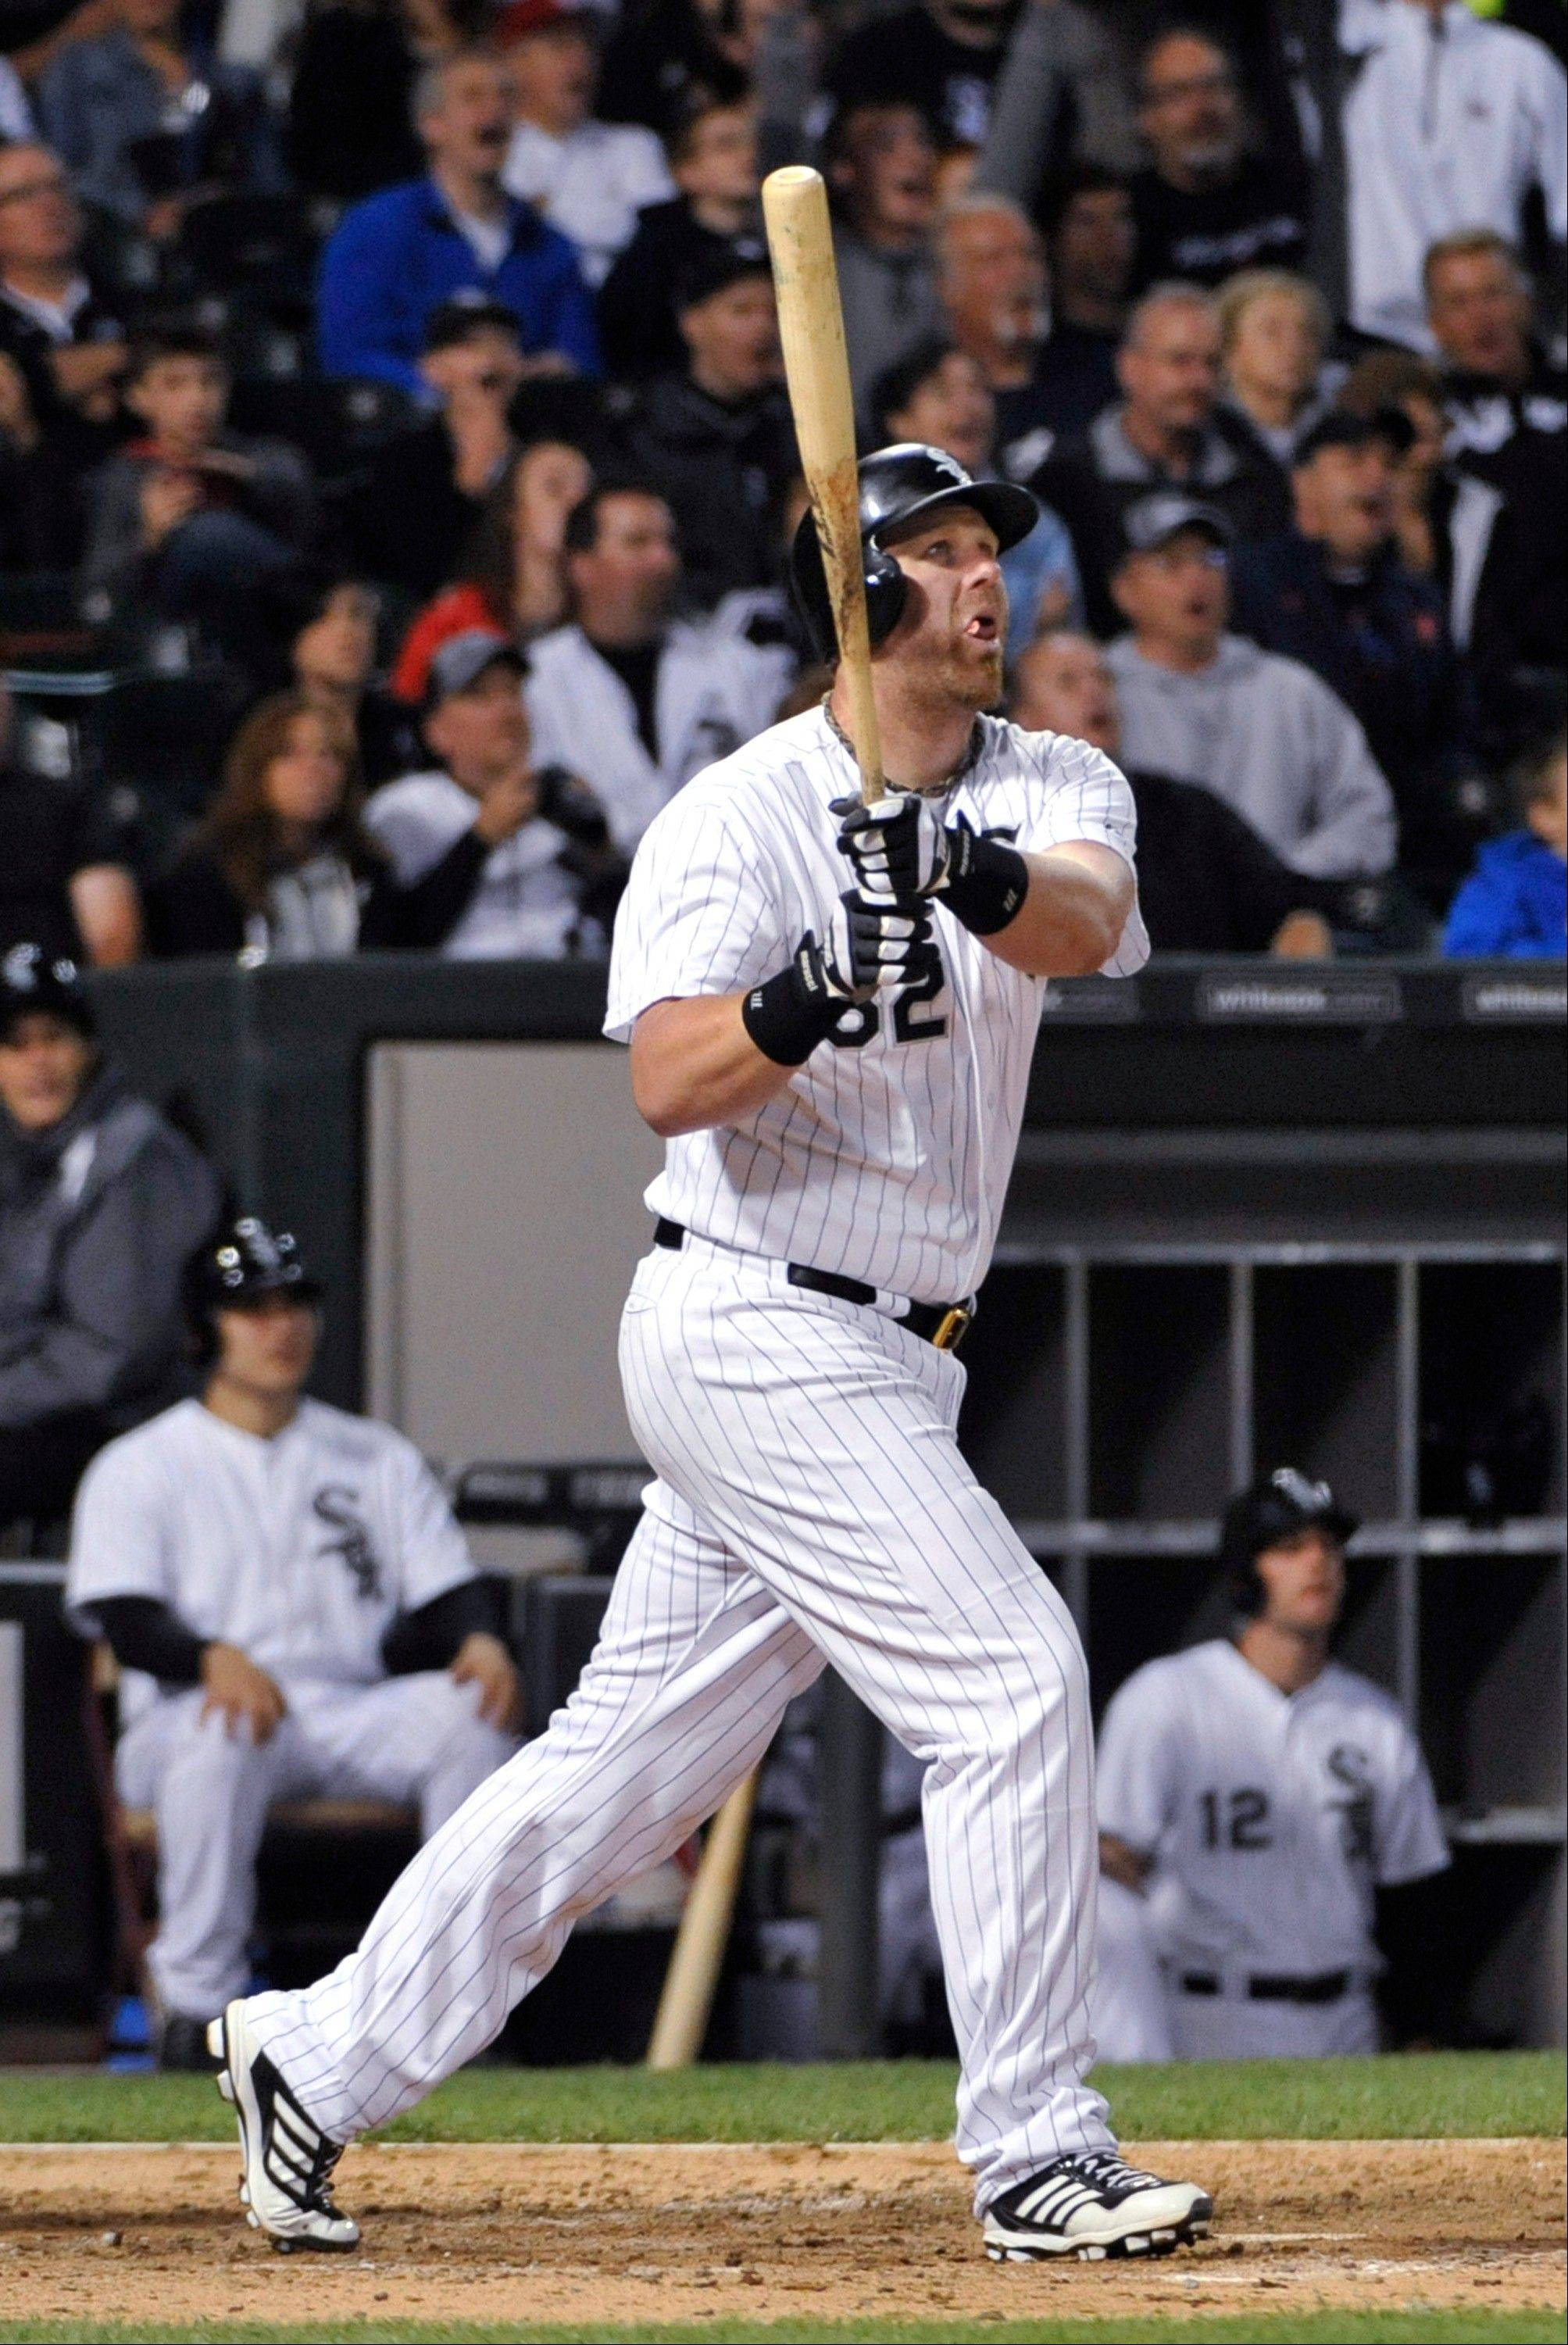 Chicago White Sox's Adam Dunn watches his two-run home run against the Baltimore Orioles during the seventh inning of a baseball game, Tuesday, July 2, 2013, in Chicago.